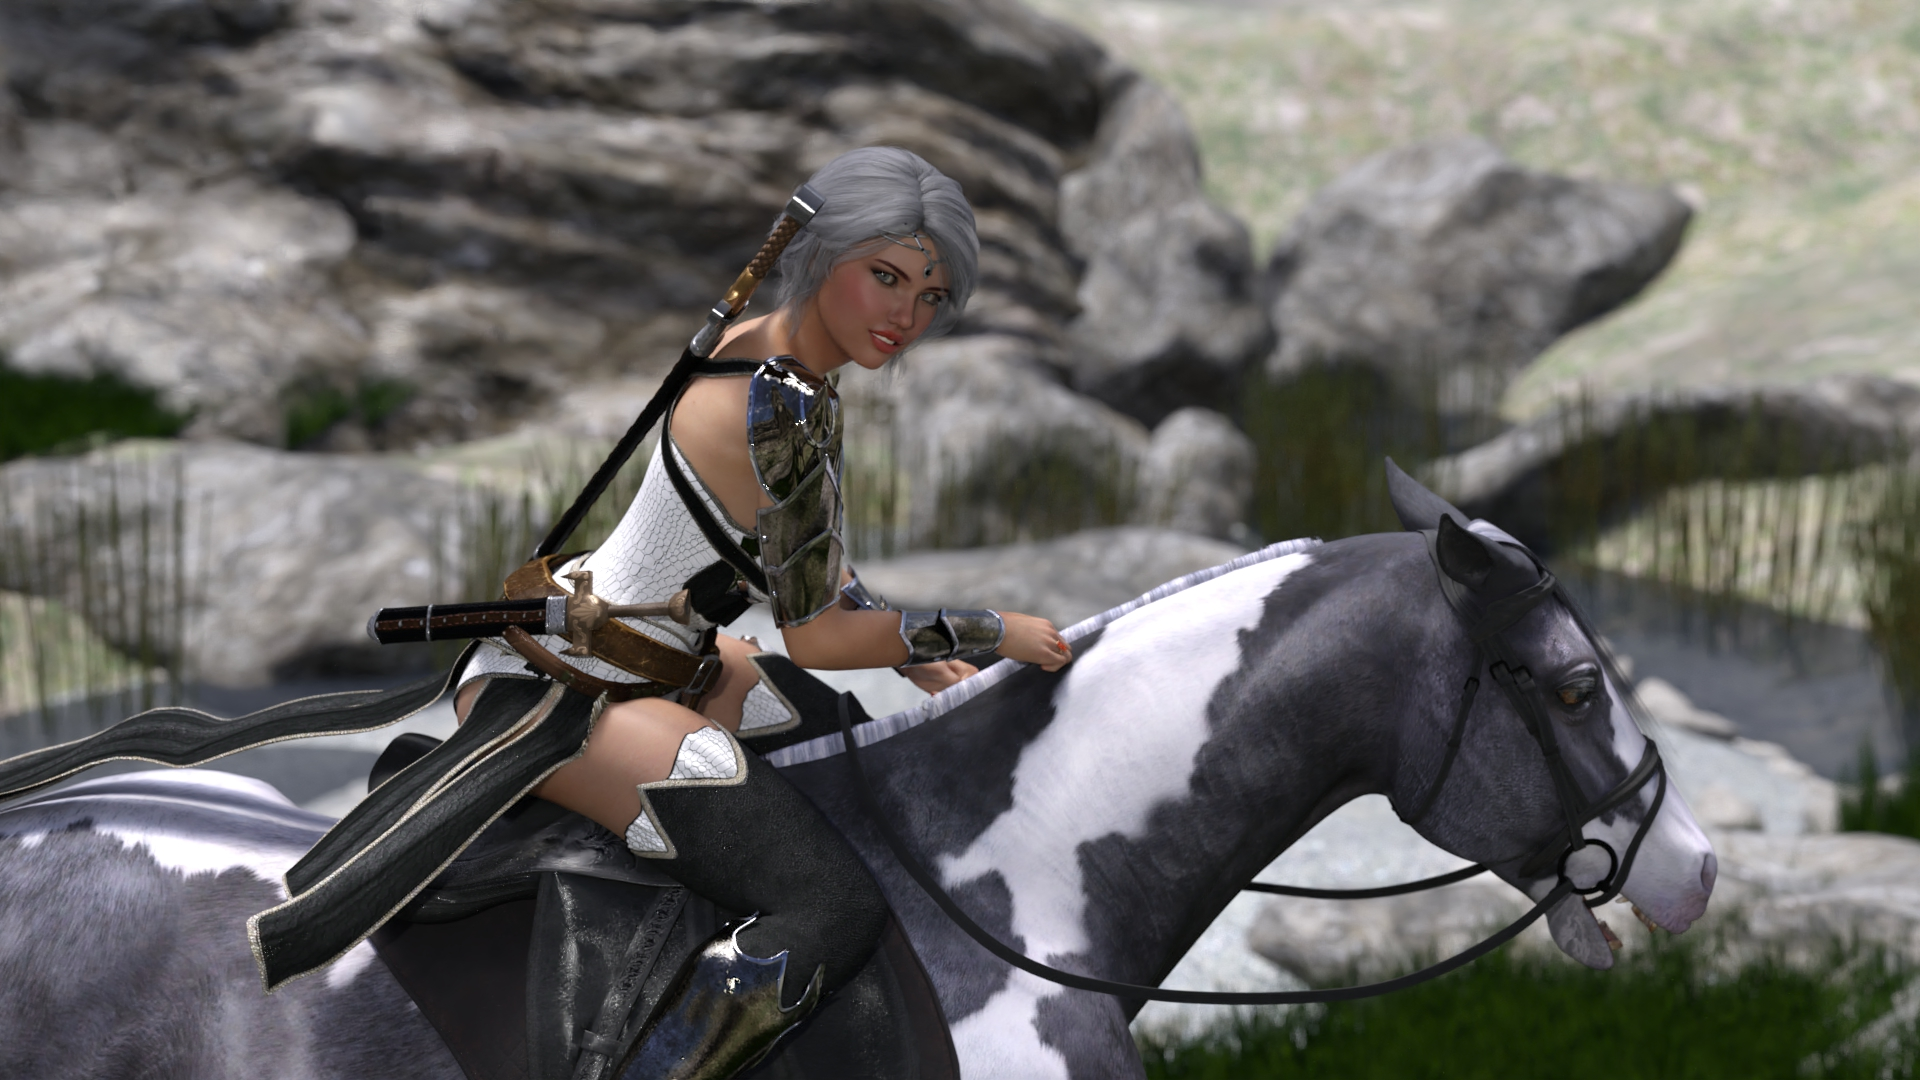 Ciri from the Witcher universe in sexy clothes on a horse.